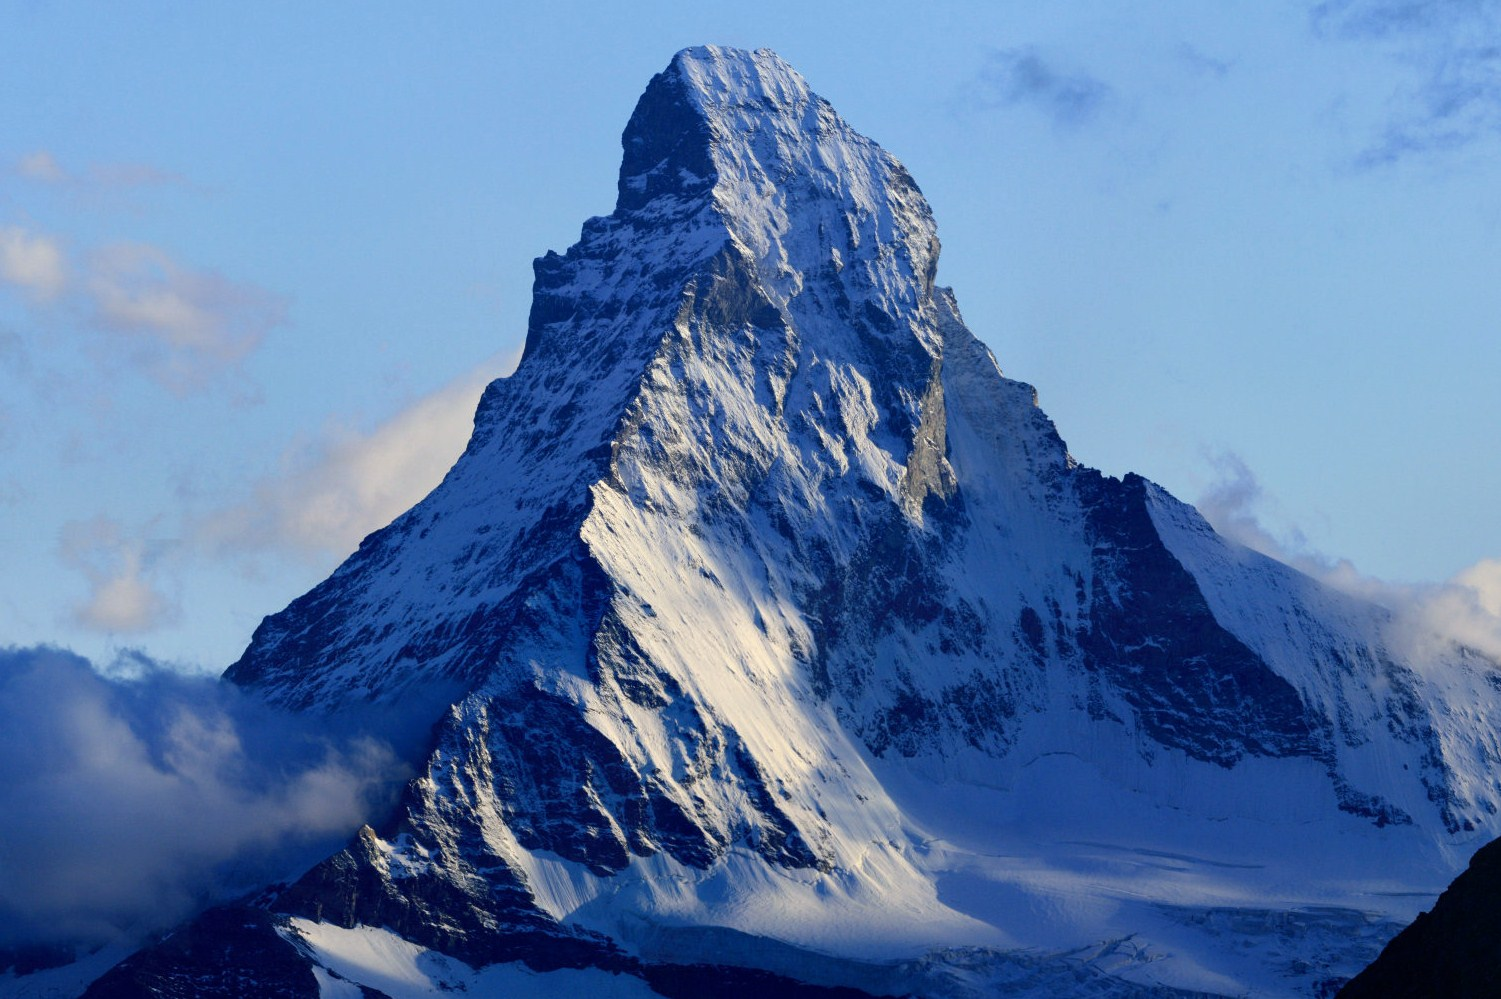 Matterhorn – also too big to fail. Photo by chil and derivative work by Zacharie Grossen (camptocamp.org). Licensed under CC BY-SA 3.0.